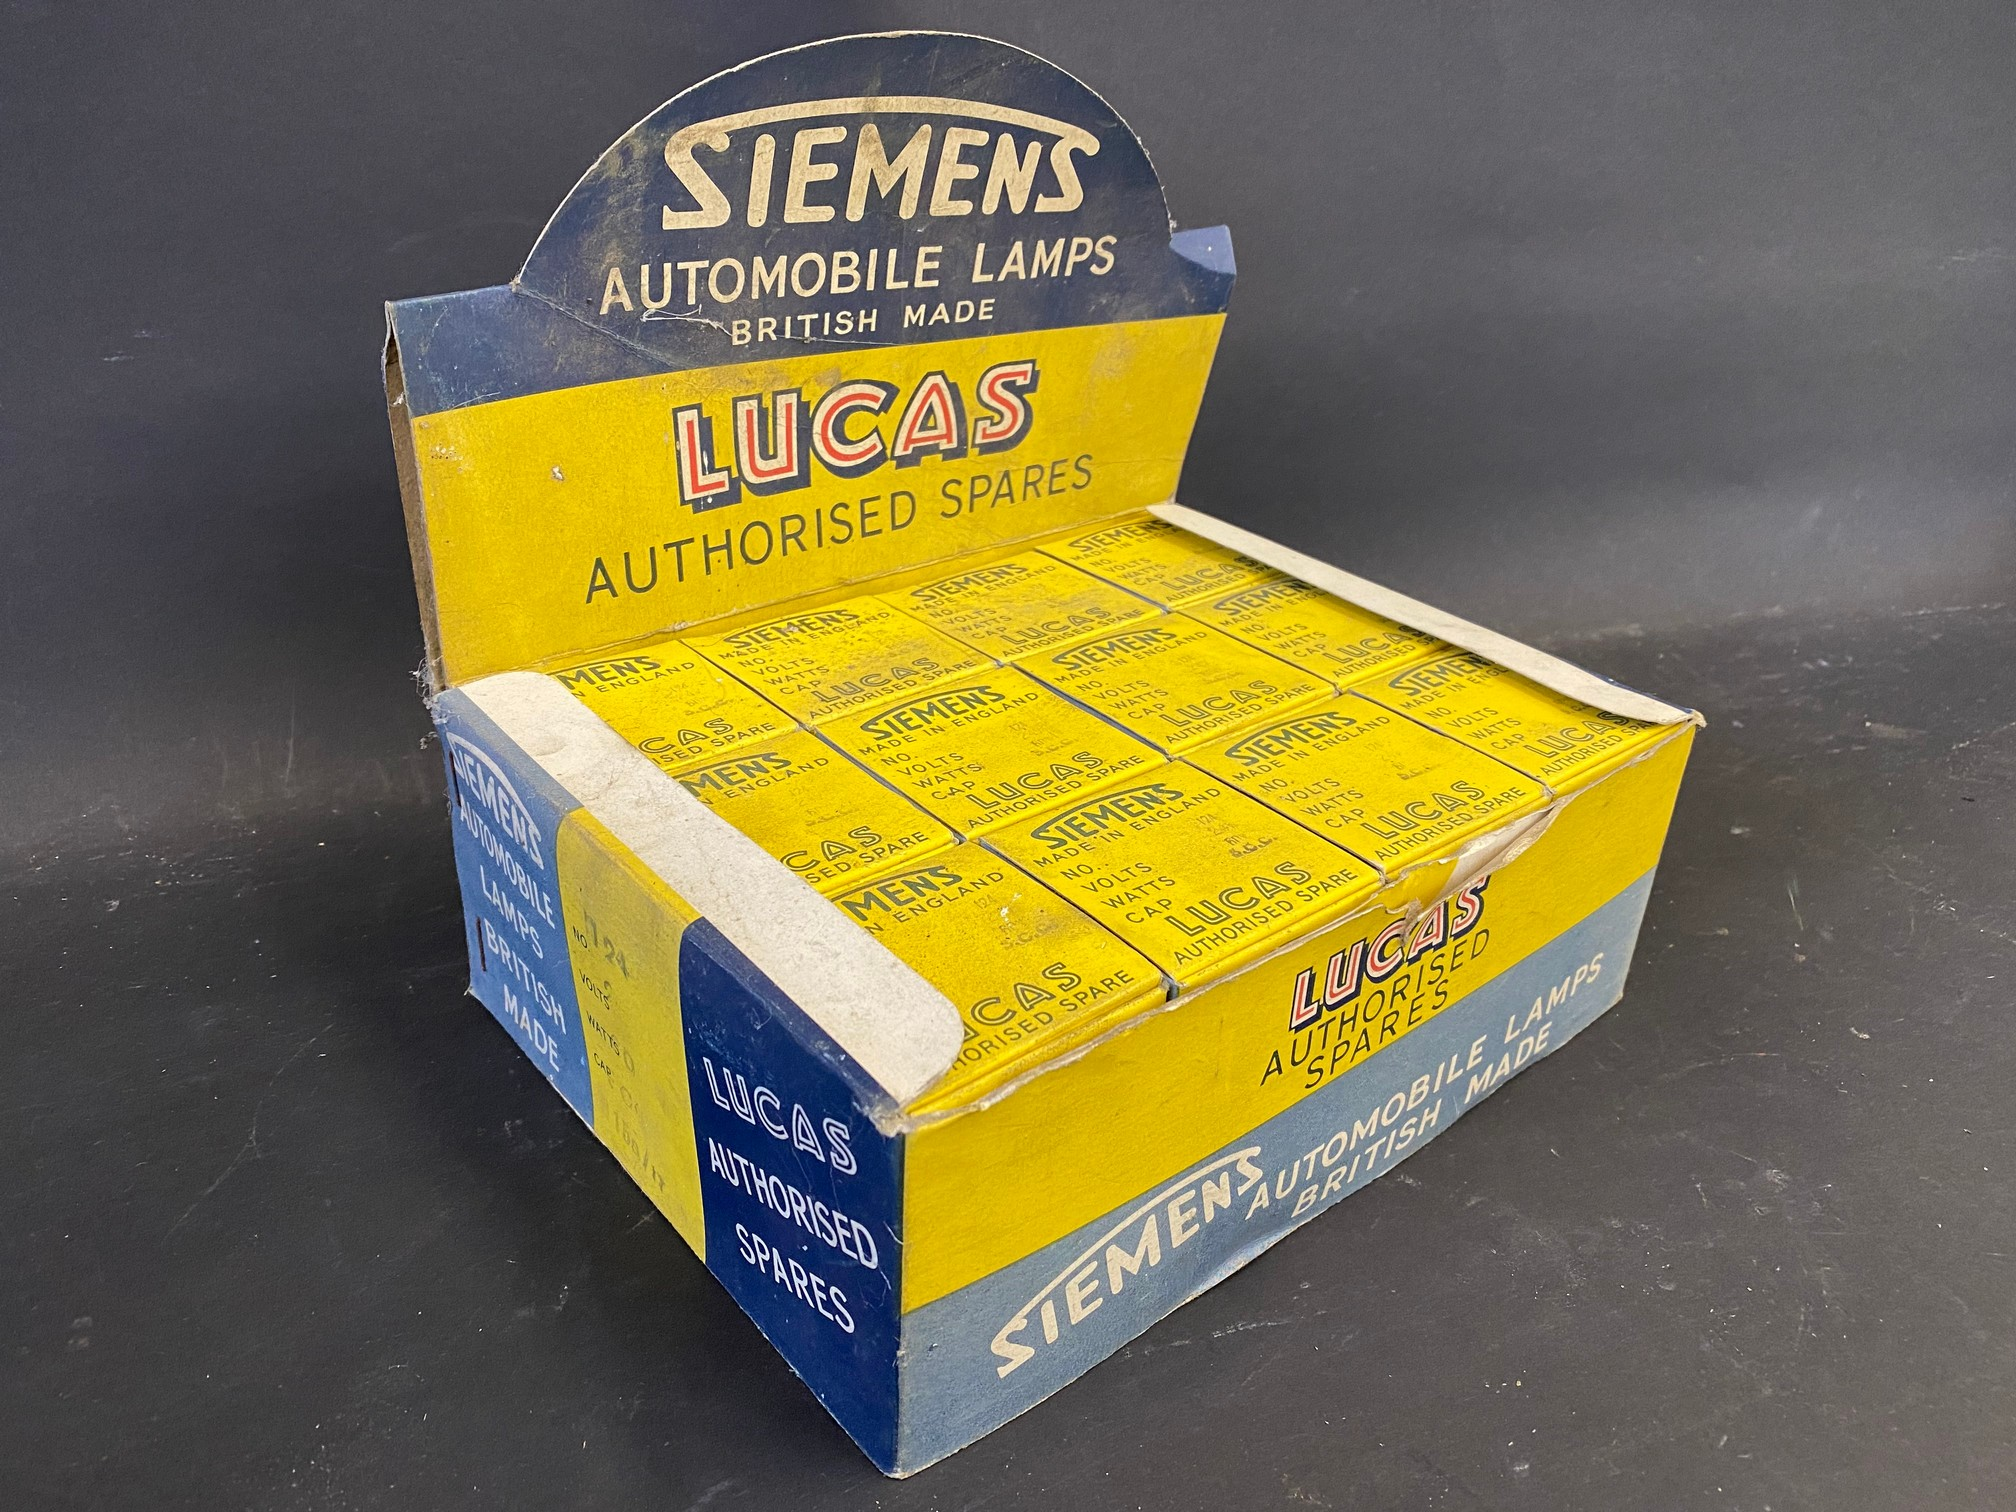 A counter top dispensing box for Siemens Automobile Lamps.